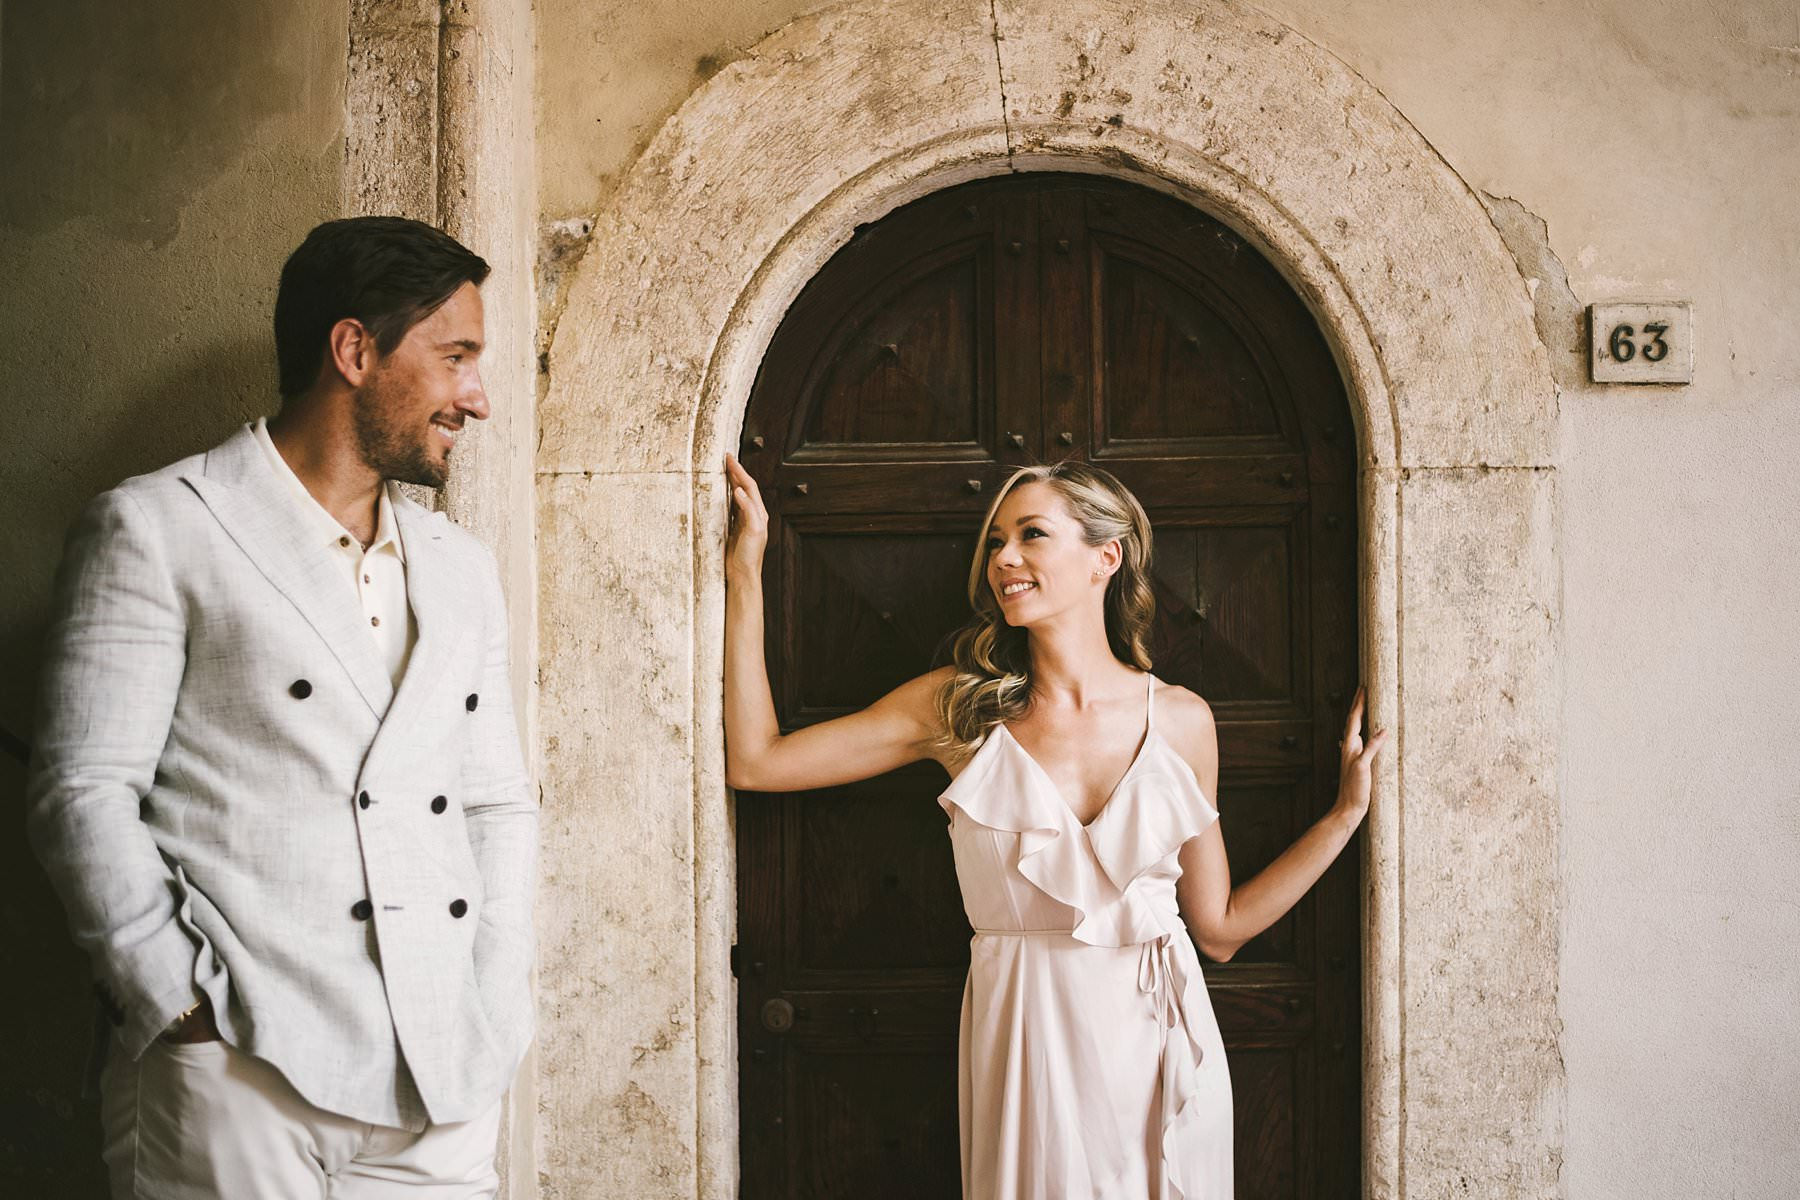 Lovely couple portrait photo shoot in Pienza historic town